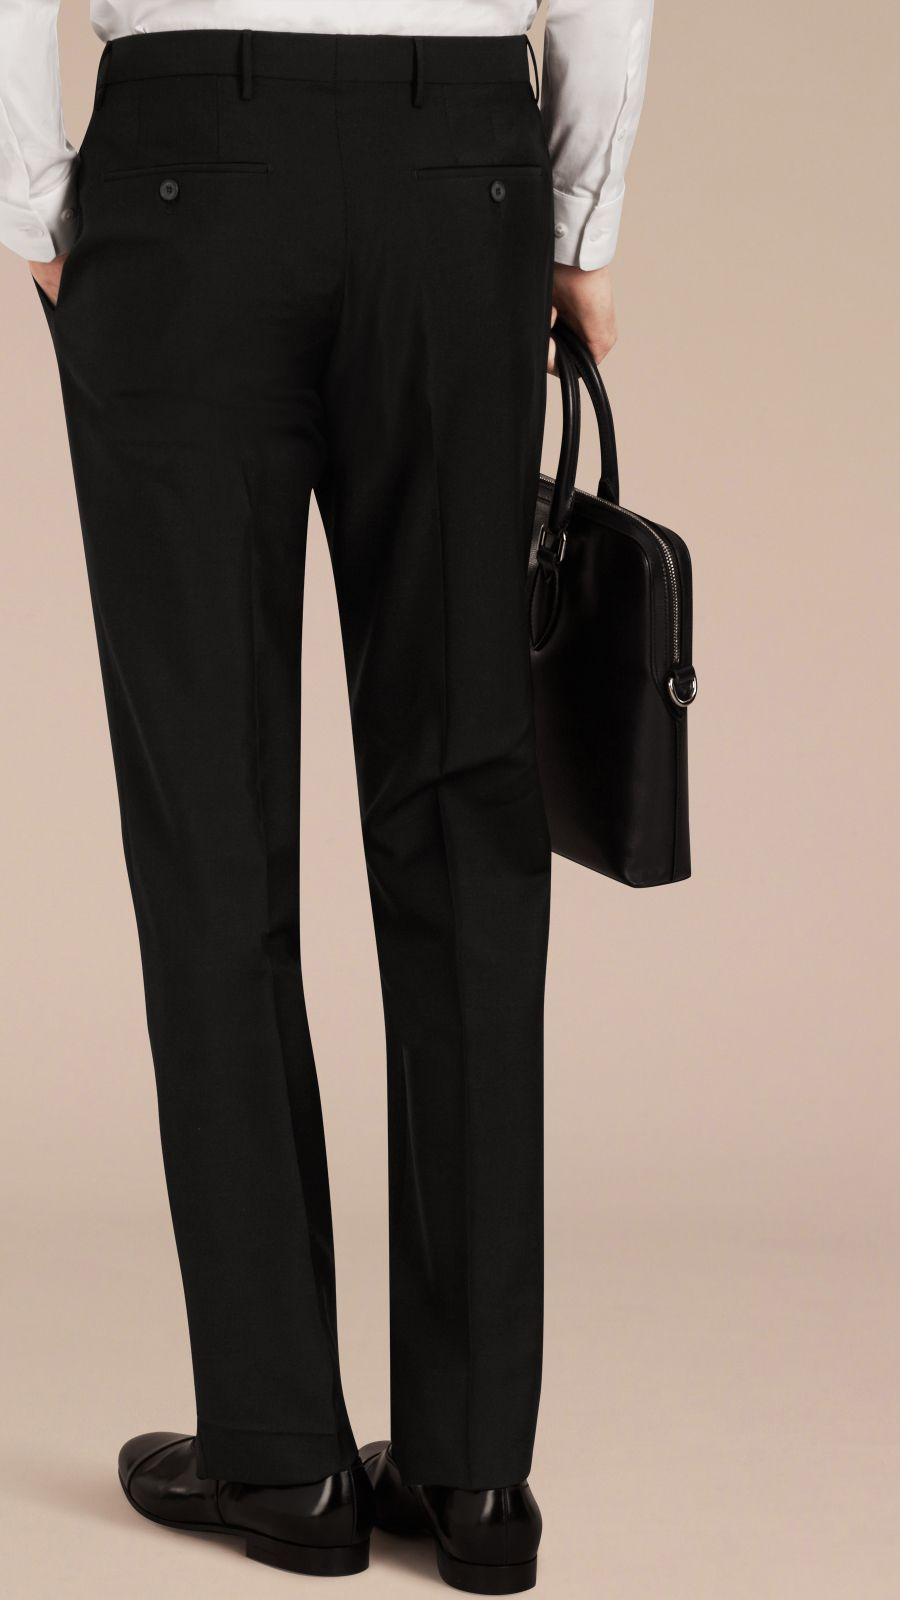 Black Slim Fit Wool Mohair Trousers Black - Image 4